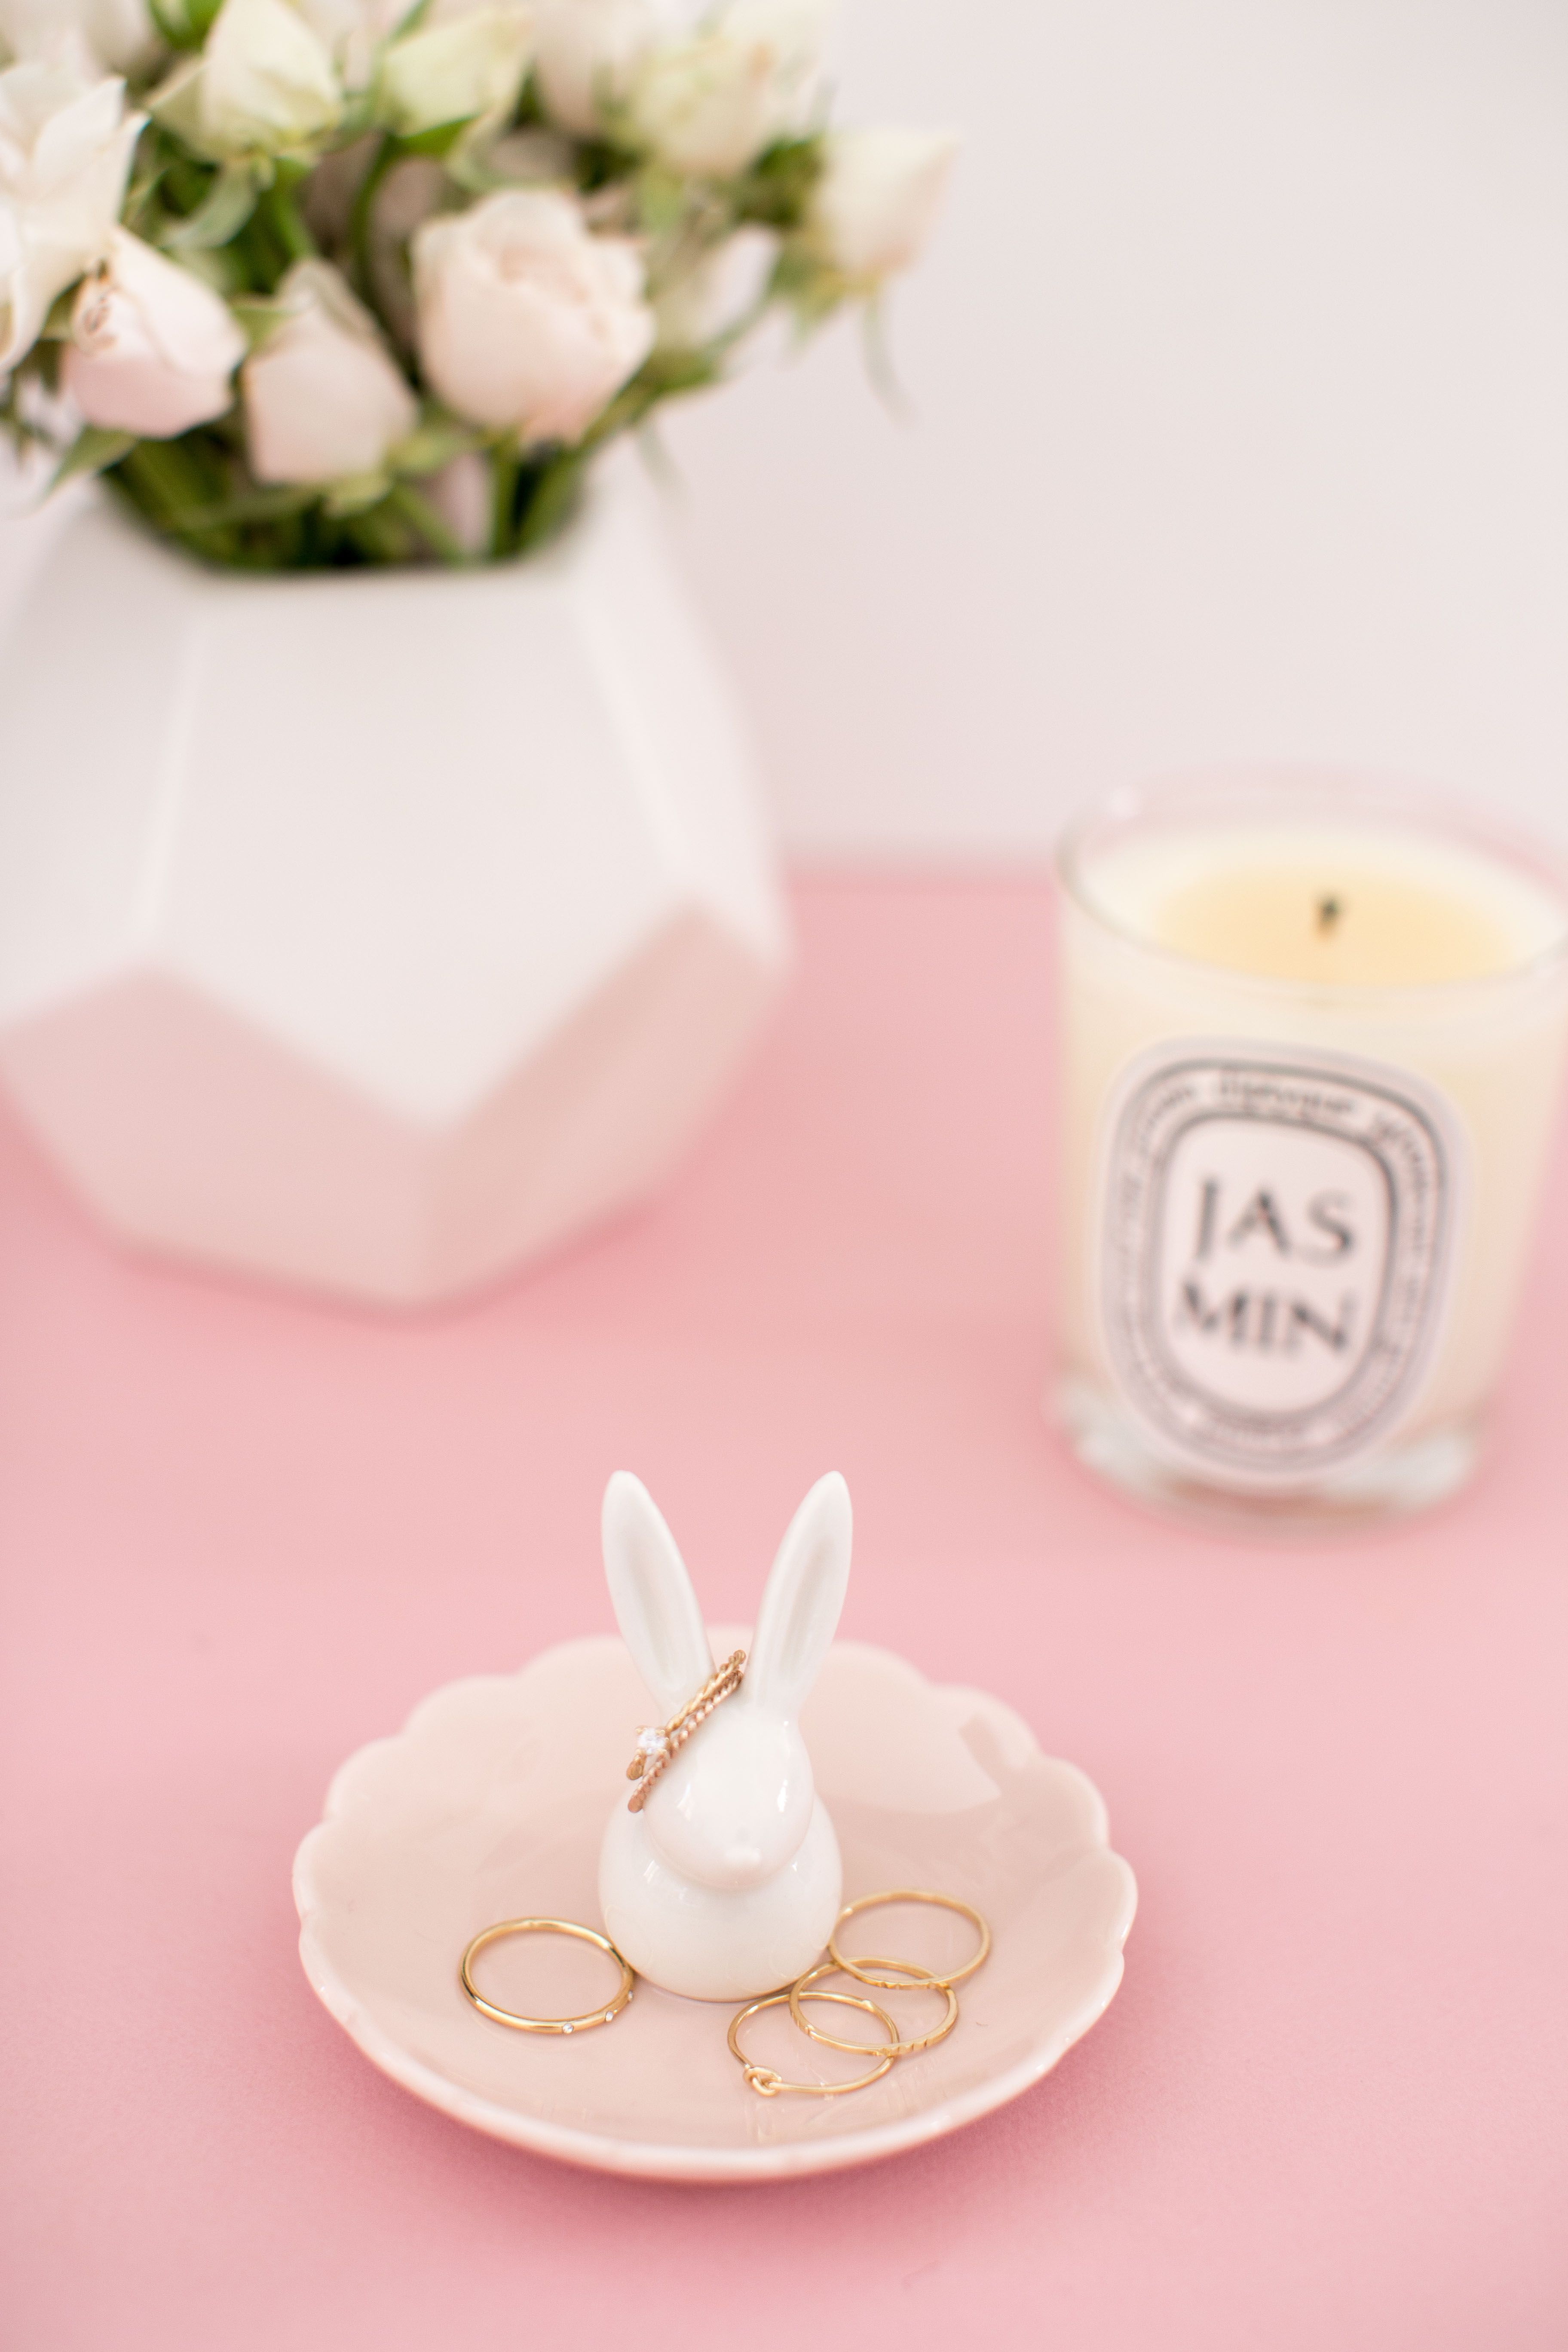 Lc Lauren Conrad For Kohl's Bunny Ring Holder